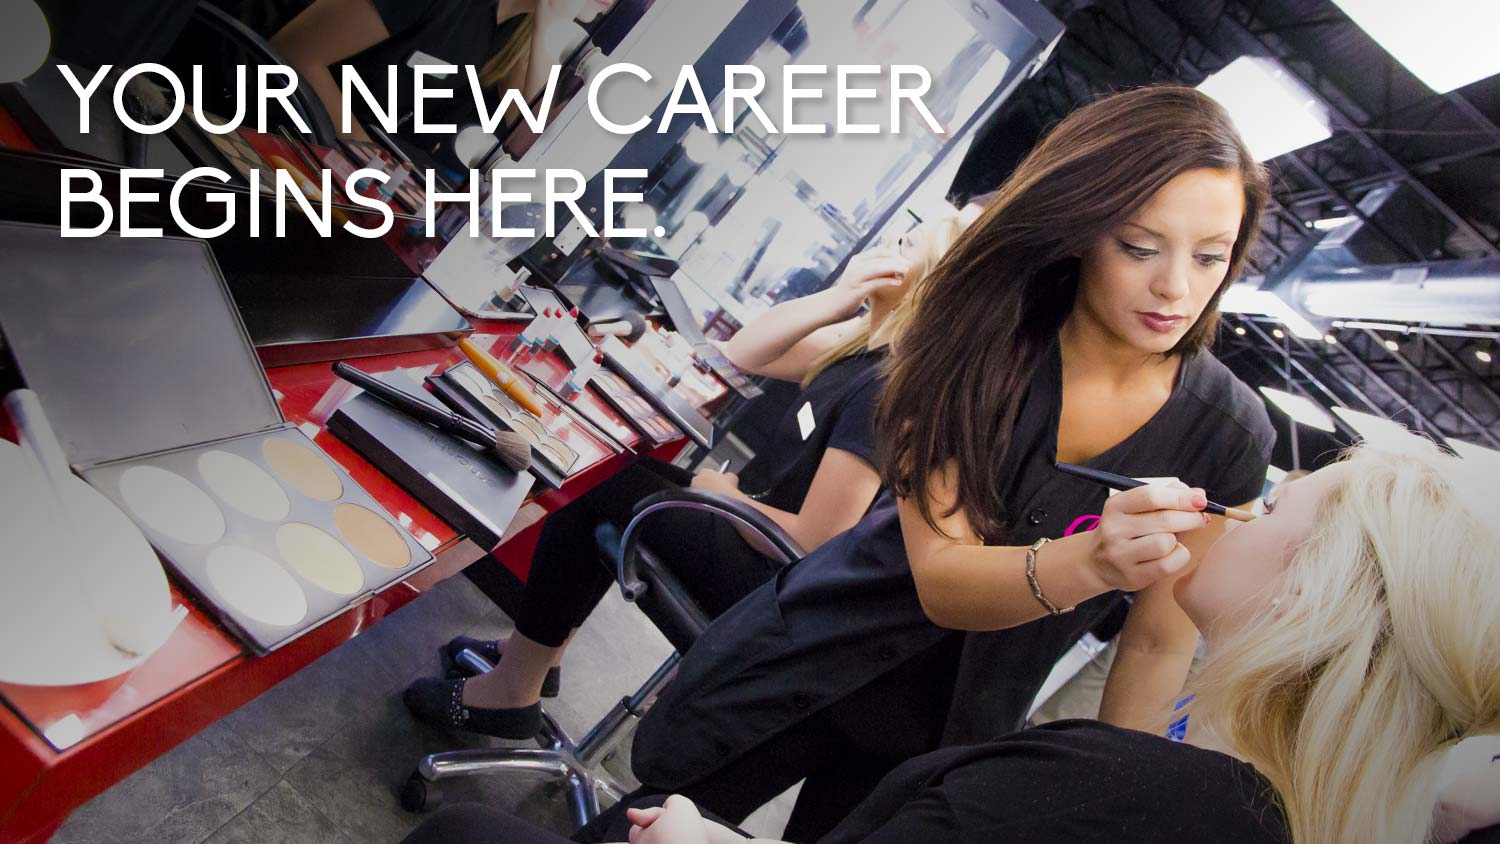 Trend Setters School - Cape Girardeau\'s Cosmetology and Barbering School